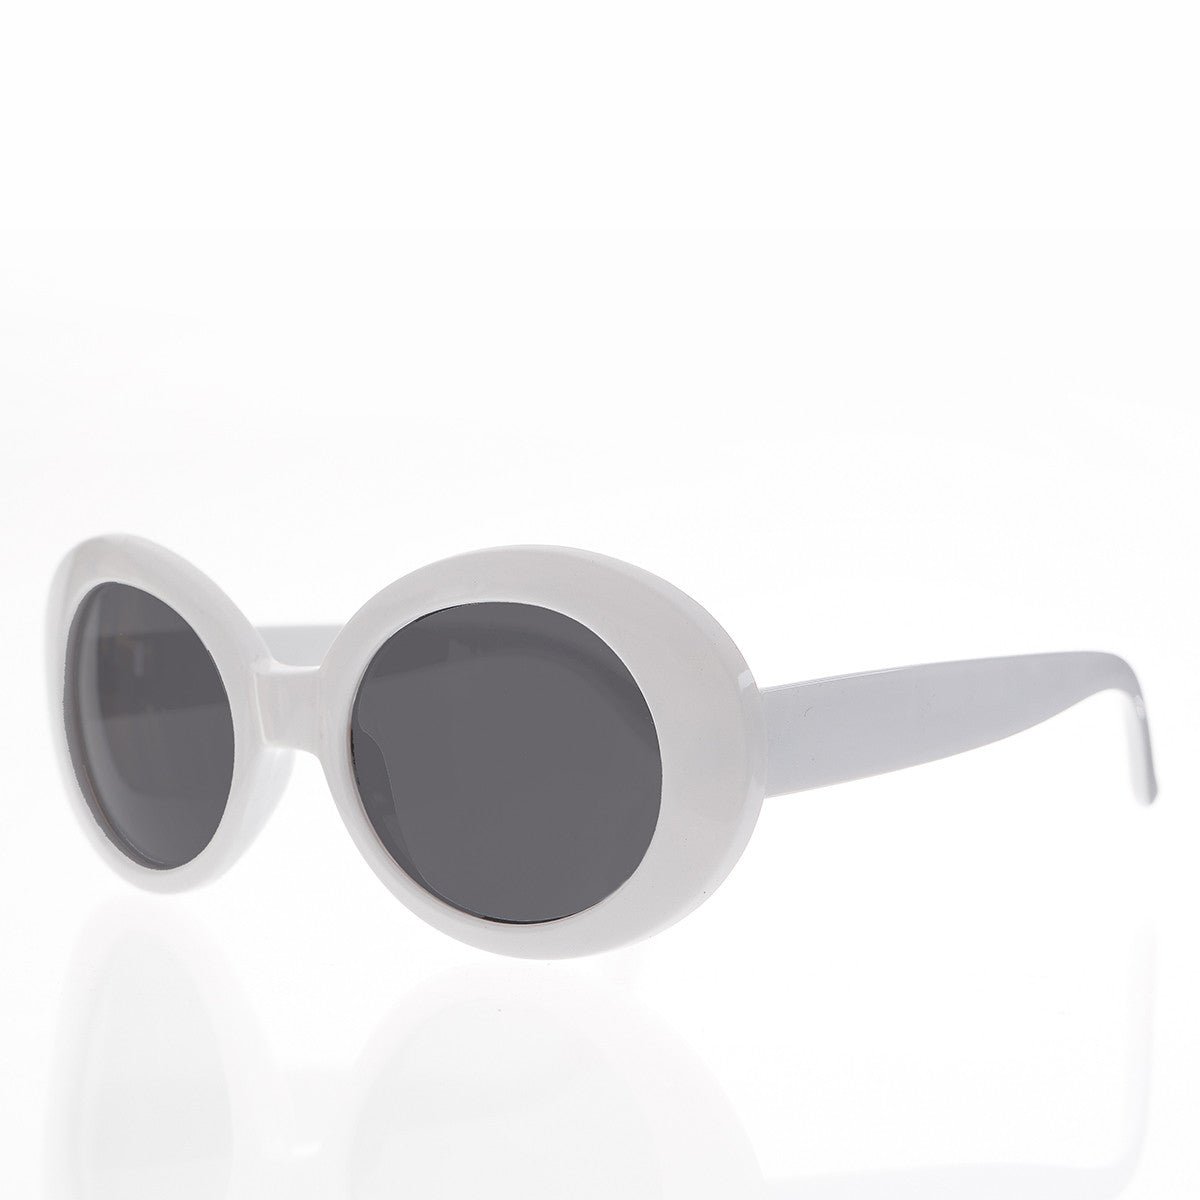 Kurt Cobain White Cat Eye Oval Clout Sunglasses - Kurtis